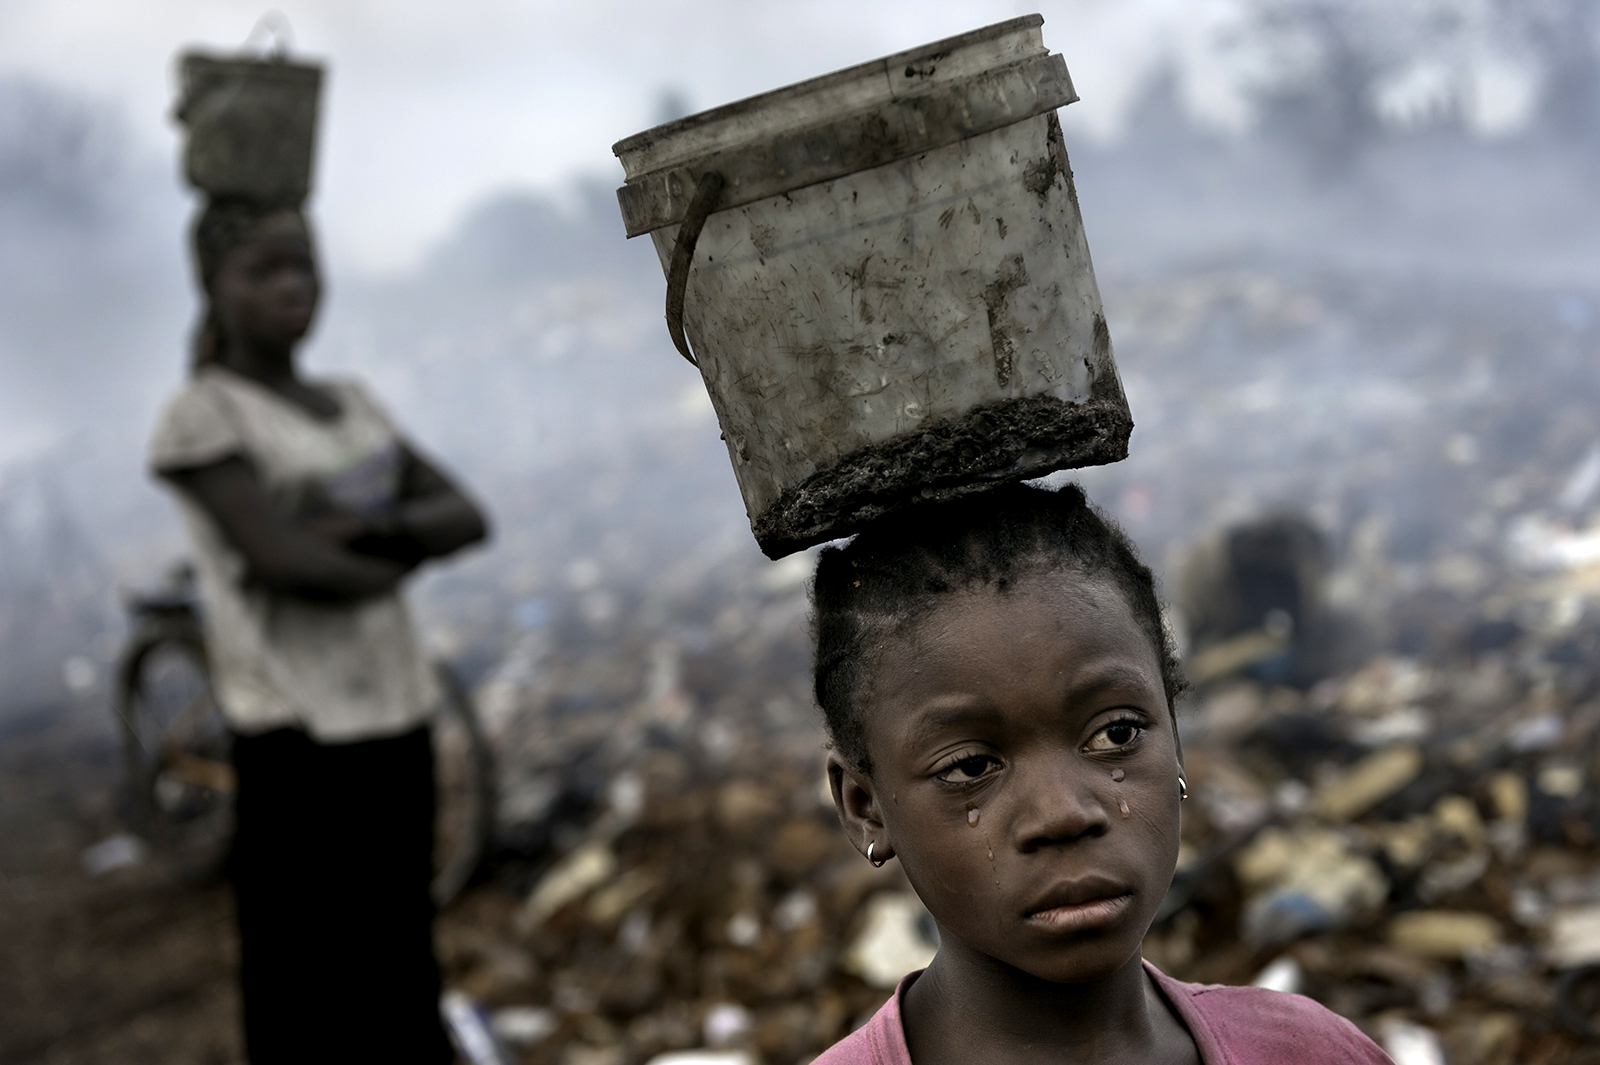 In Ghana in an e-waste dump that kills nearly everything that it touches, Fati, 8, works with other children searching through hazardous waste in hopes of finding whatever she can to exchange for pennies in order to survive. While balancing a bucket on her head with the little metal she has found, tears stream down her face as the result of the pain that comes with the malaria she contracted some years ago. This is work she must do to survive. ©   Renée C. Byer